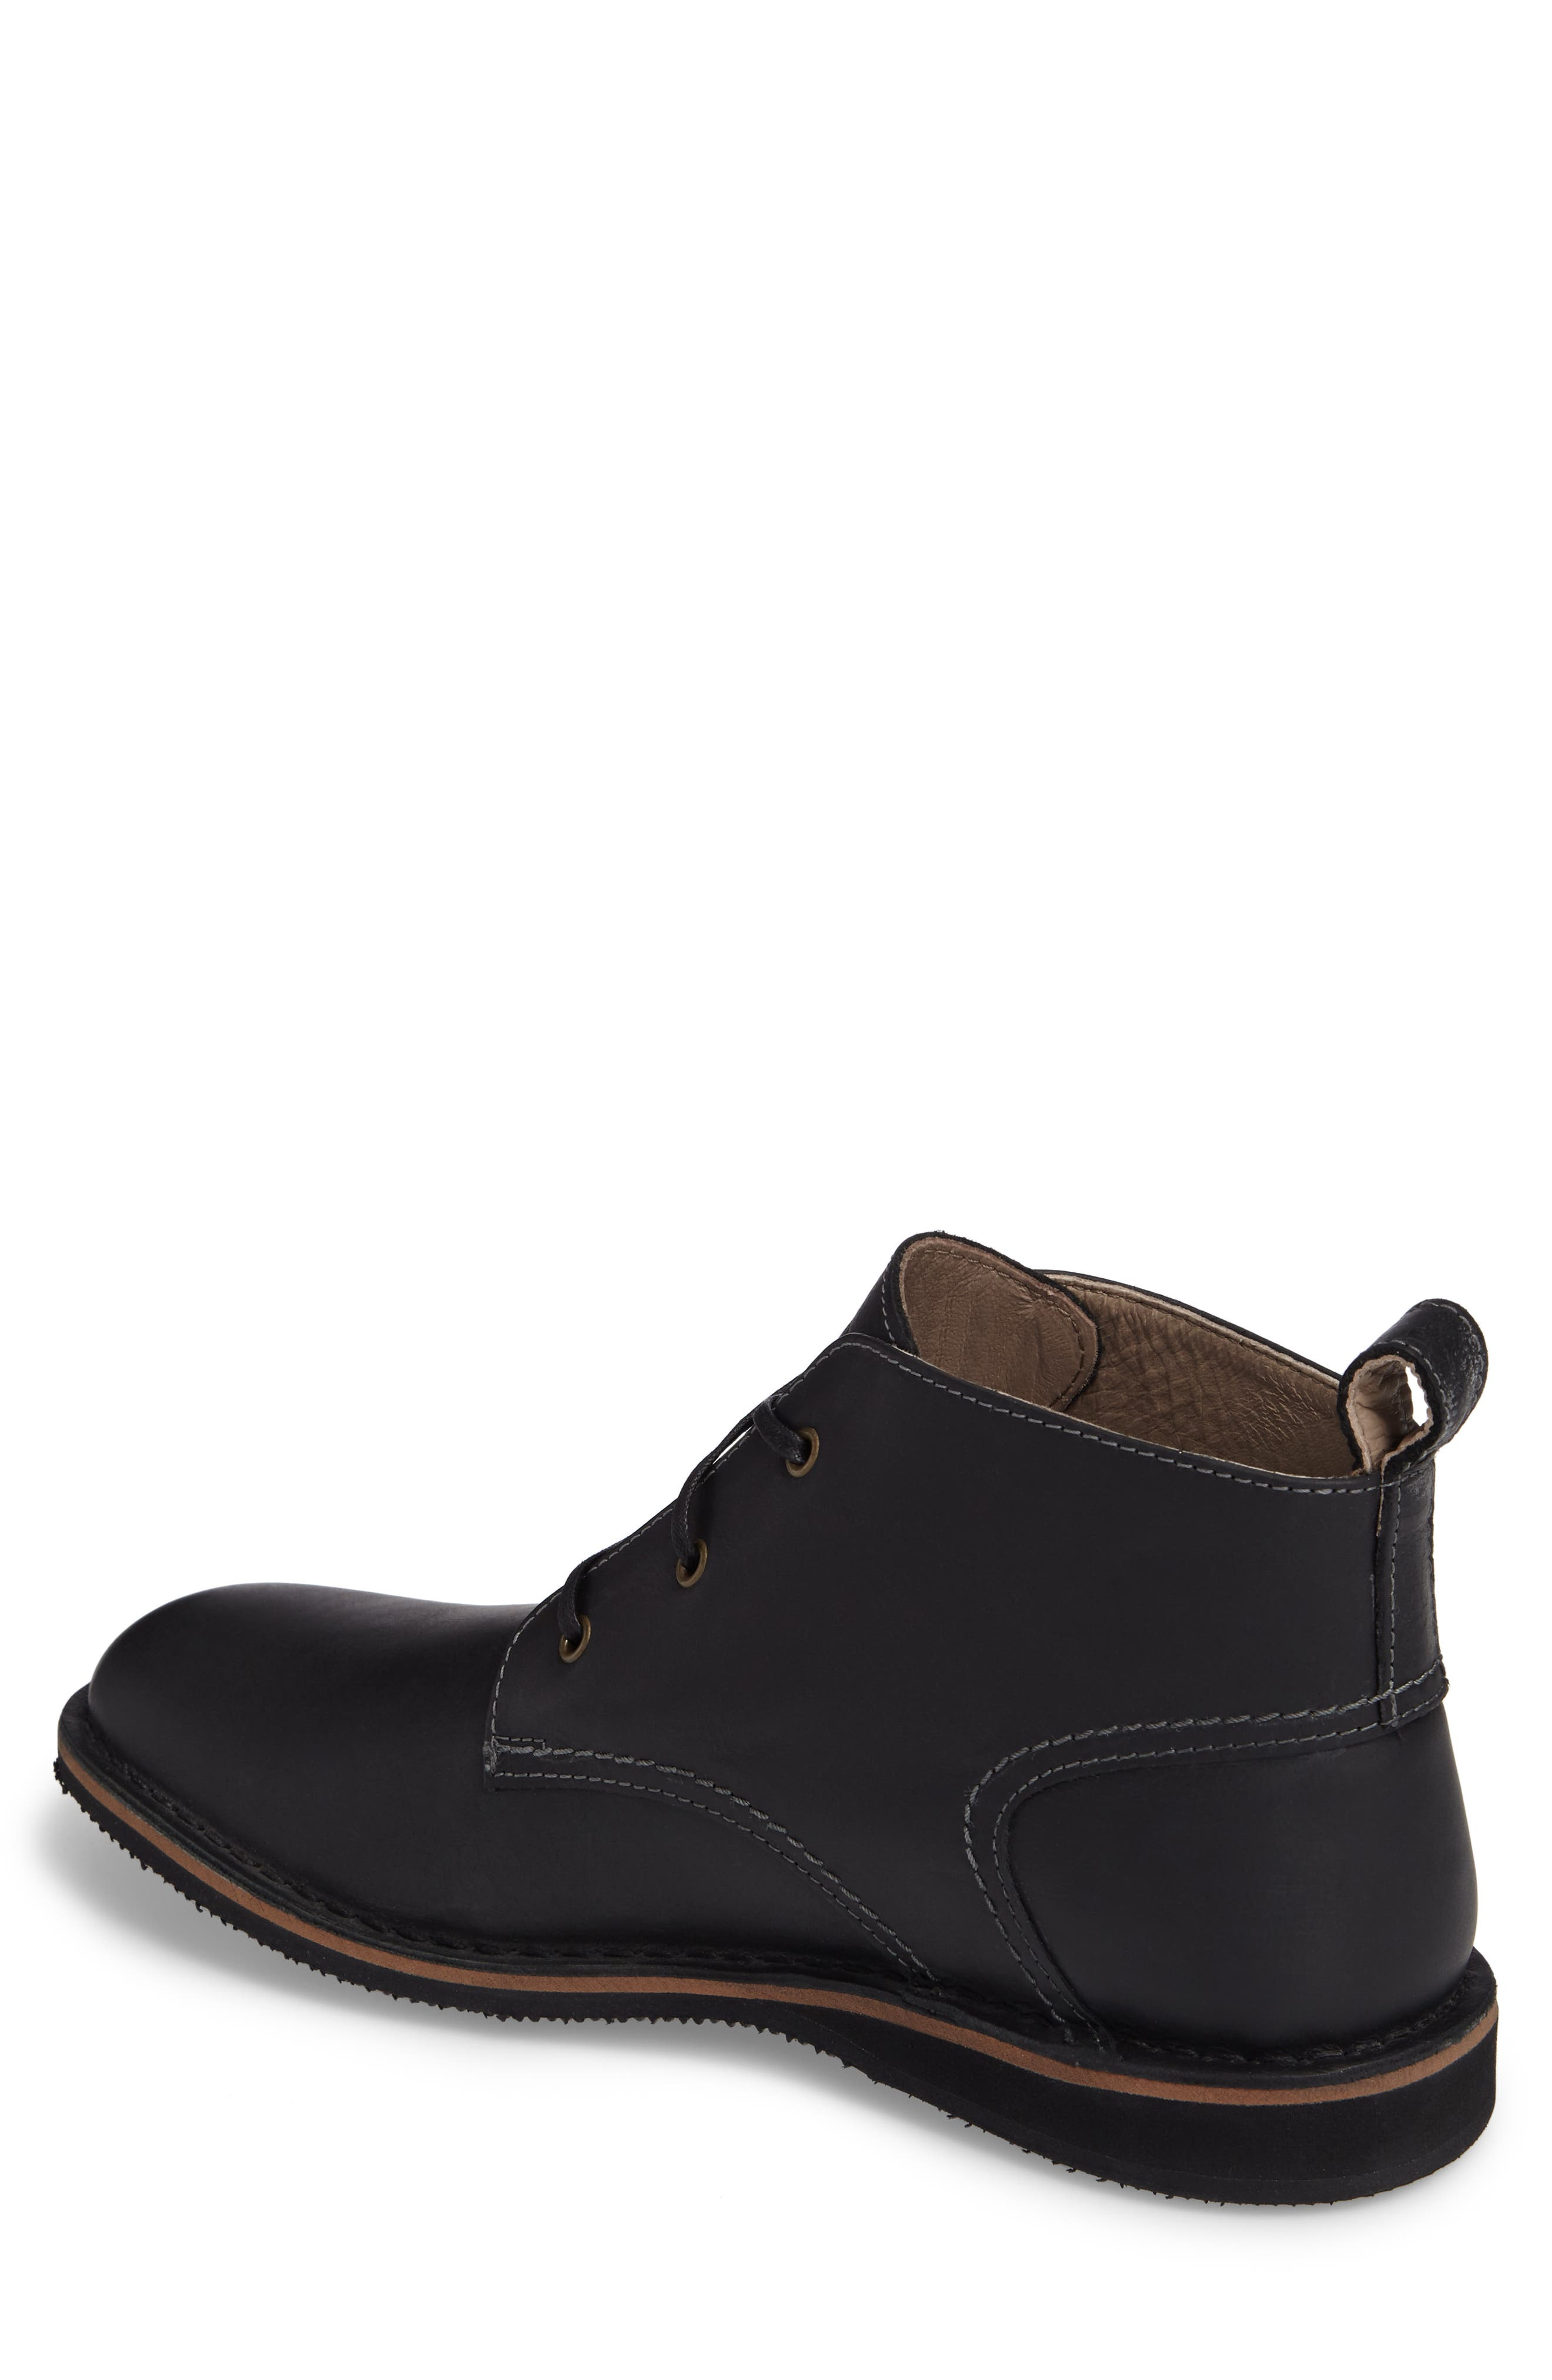 Dorchester Chukka Boot,                             Alternate thumbnail 2, color,                             Black Leather